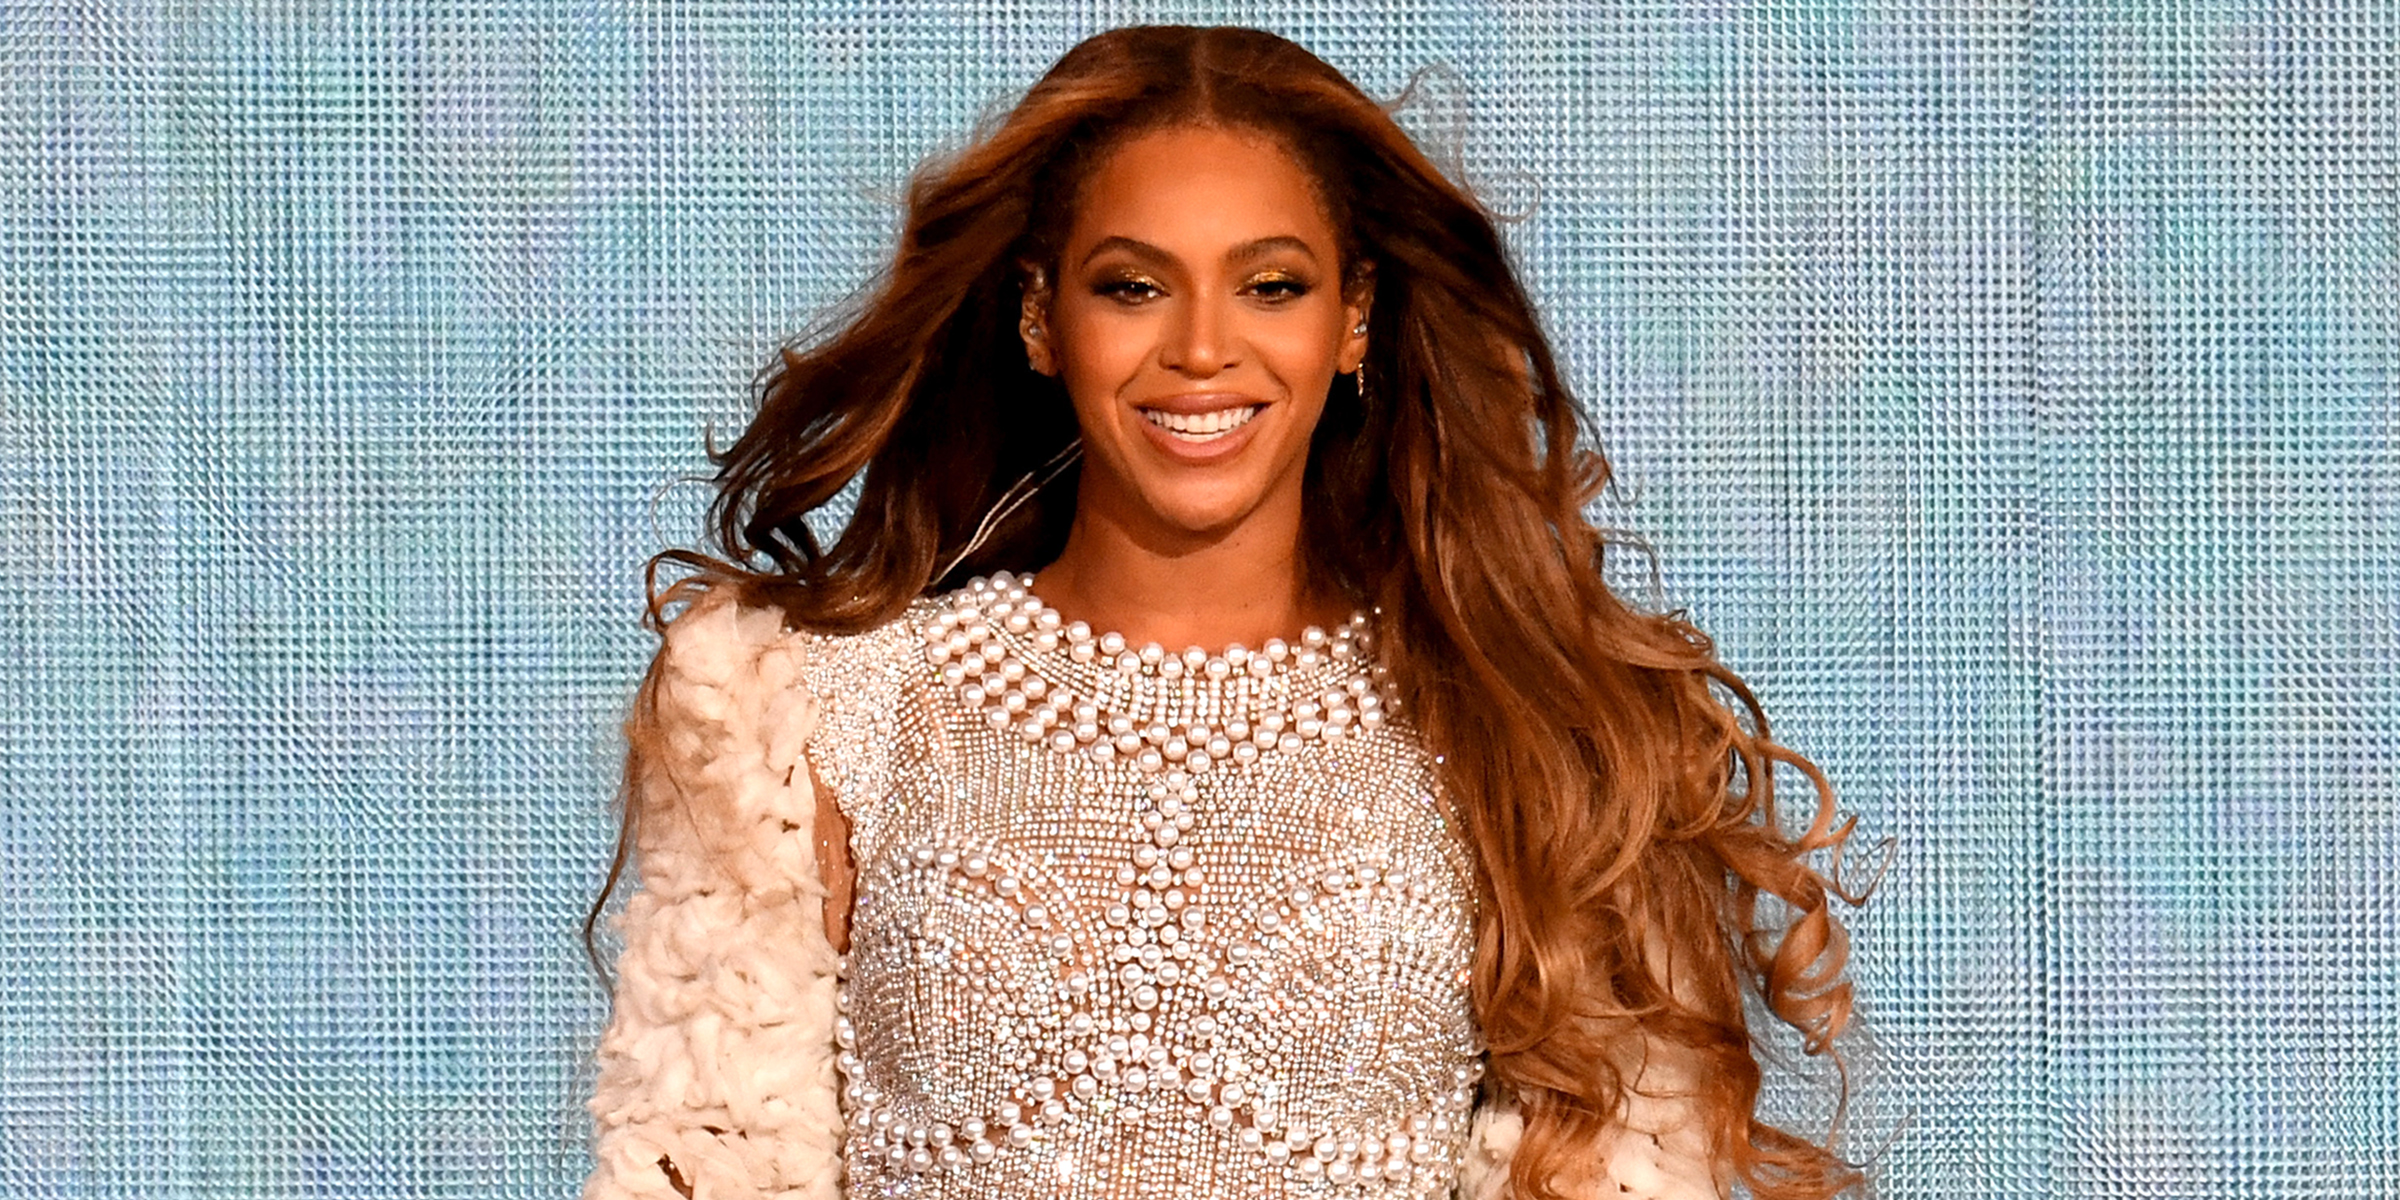 Beyoncé speaks out about 'extremely difficult pregnancy' in new Netflix doc